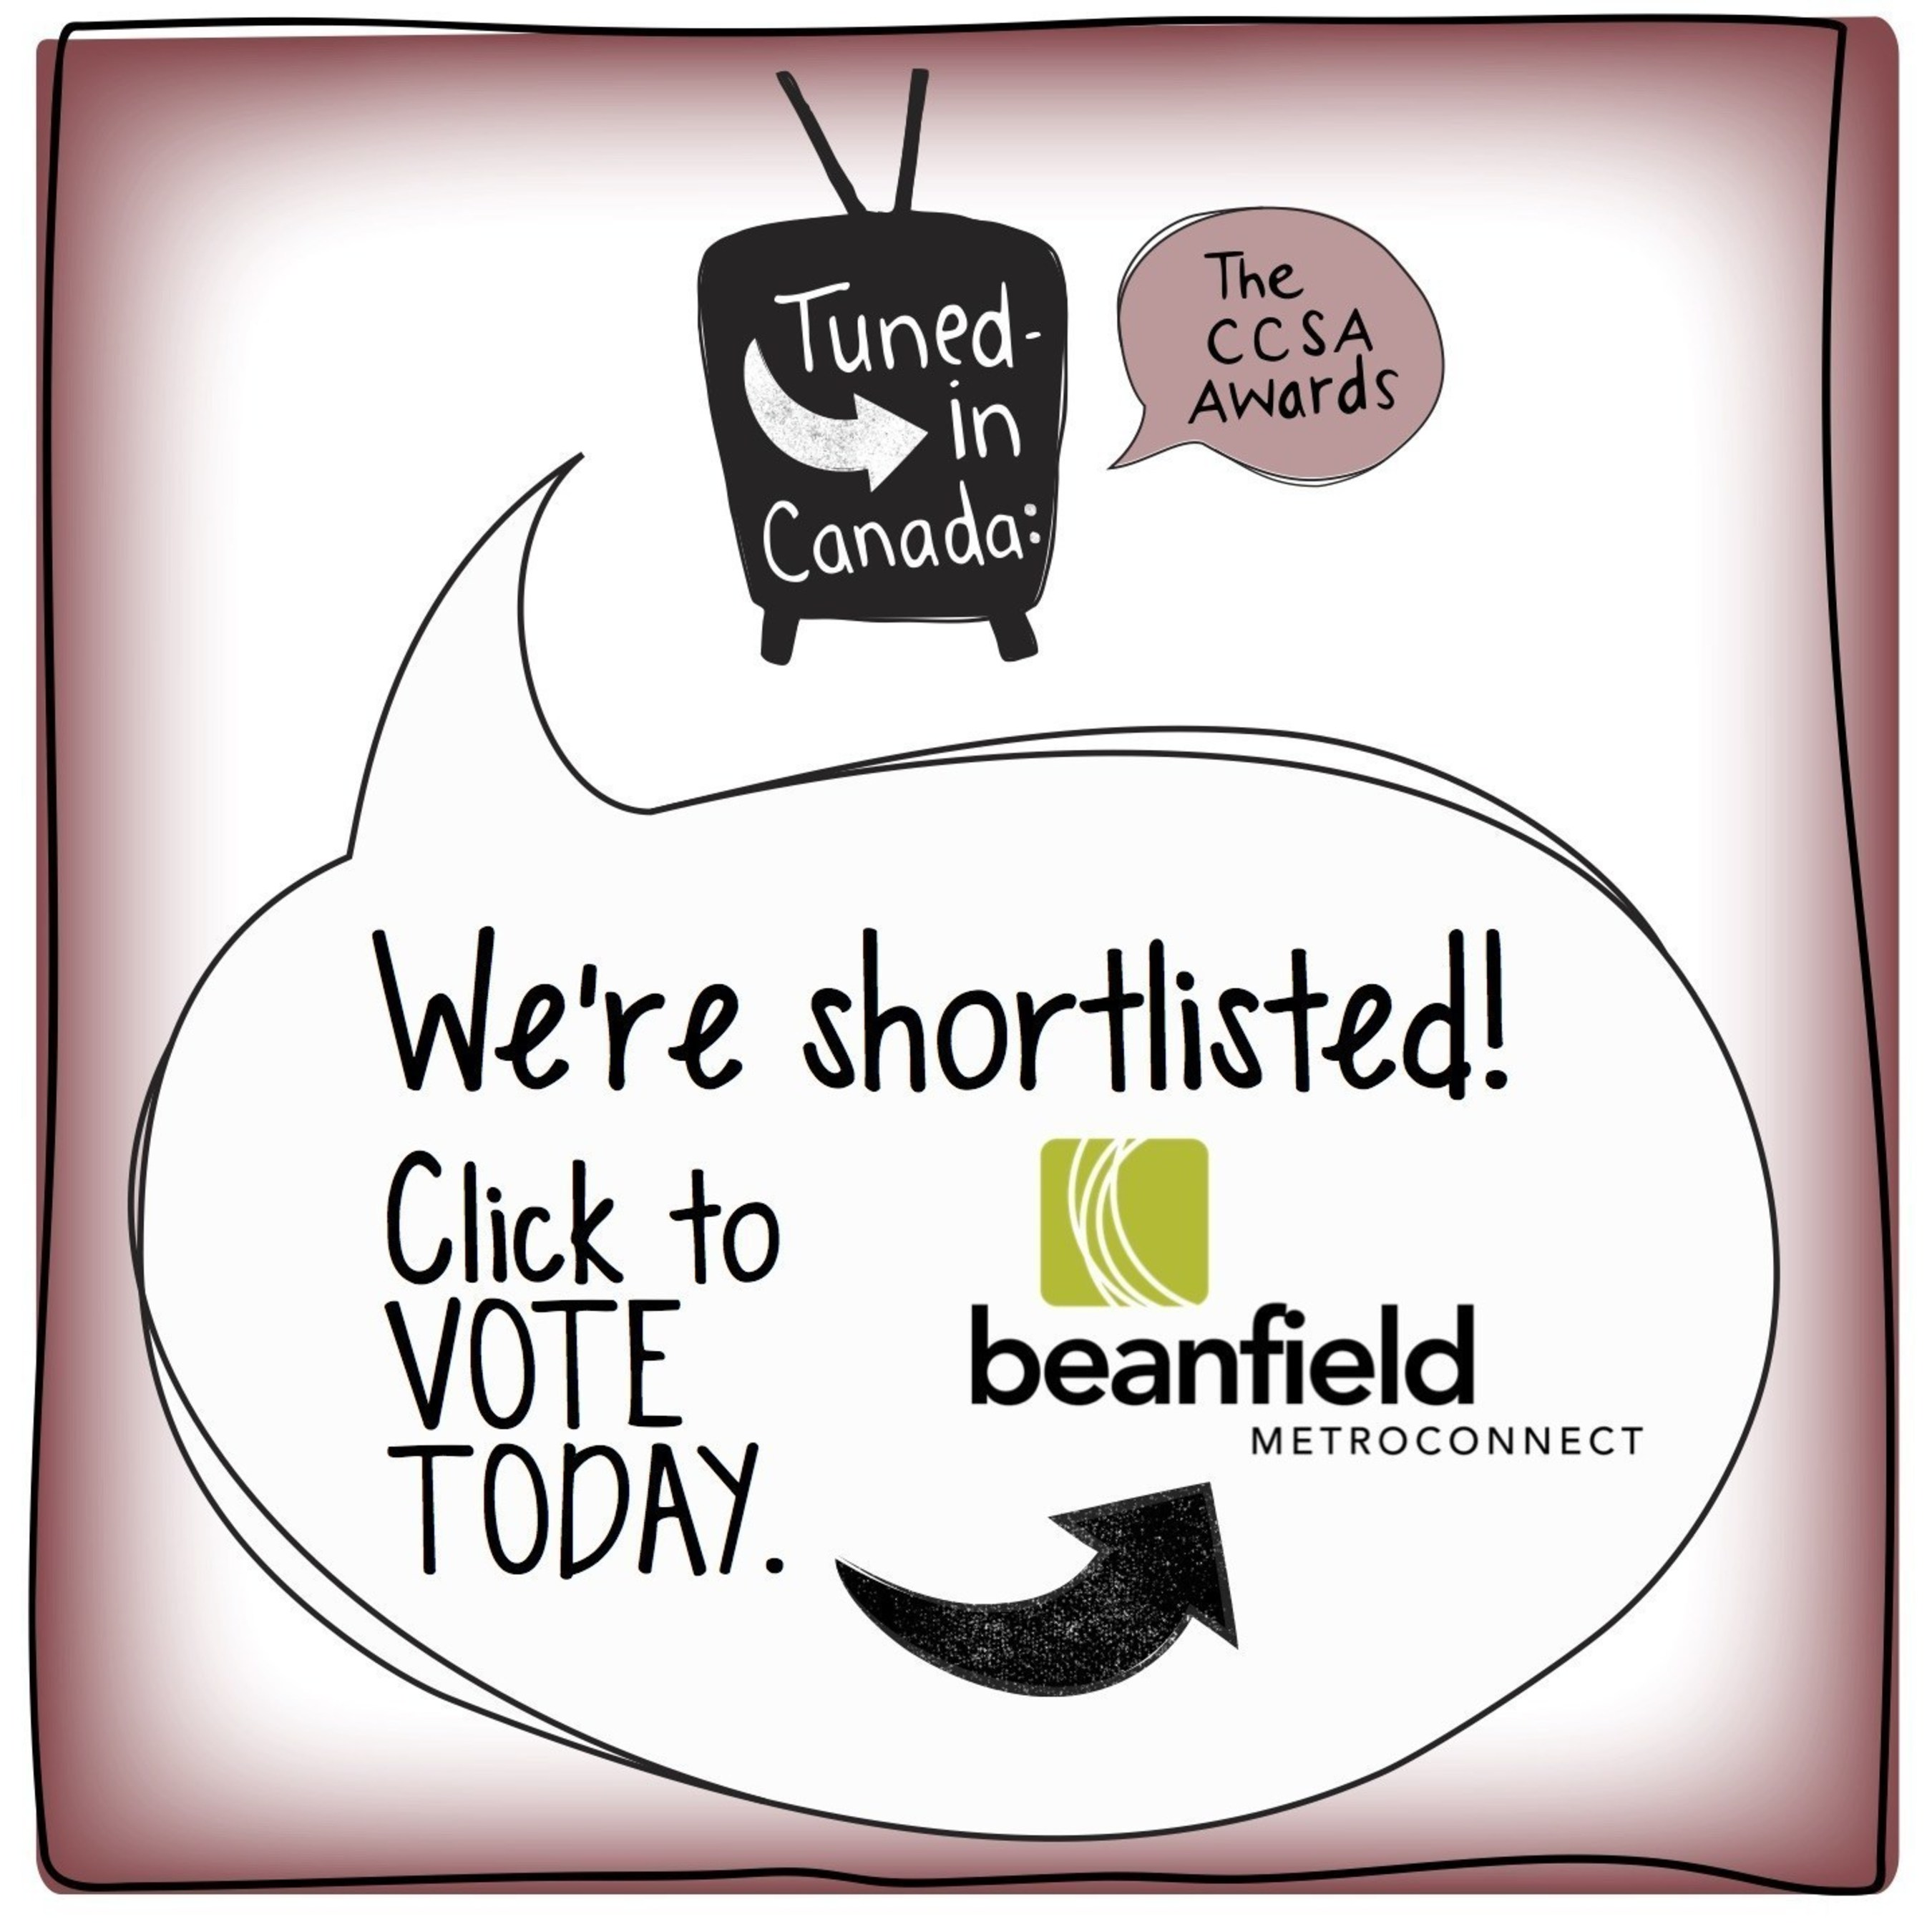 Beanfield Metroconnect Is Shortlisted for Tuned-in Canada: The CCSA Awards